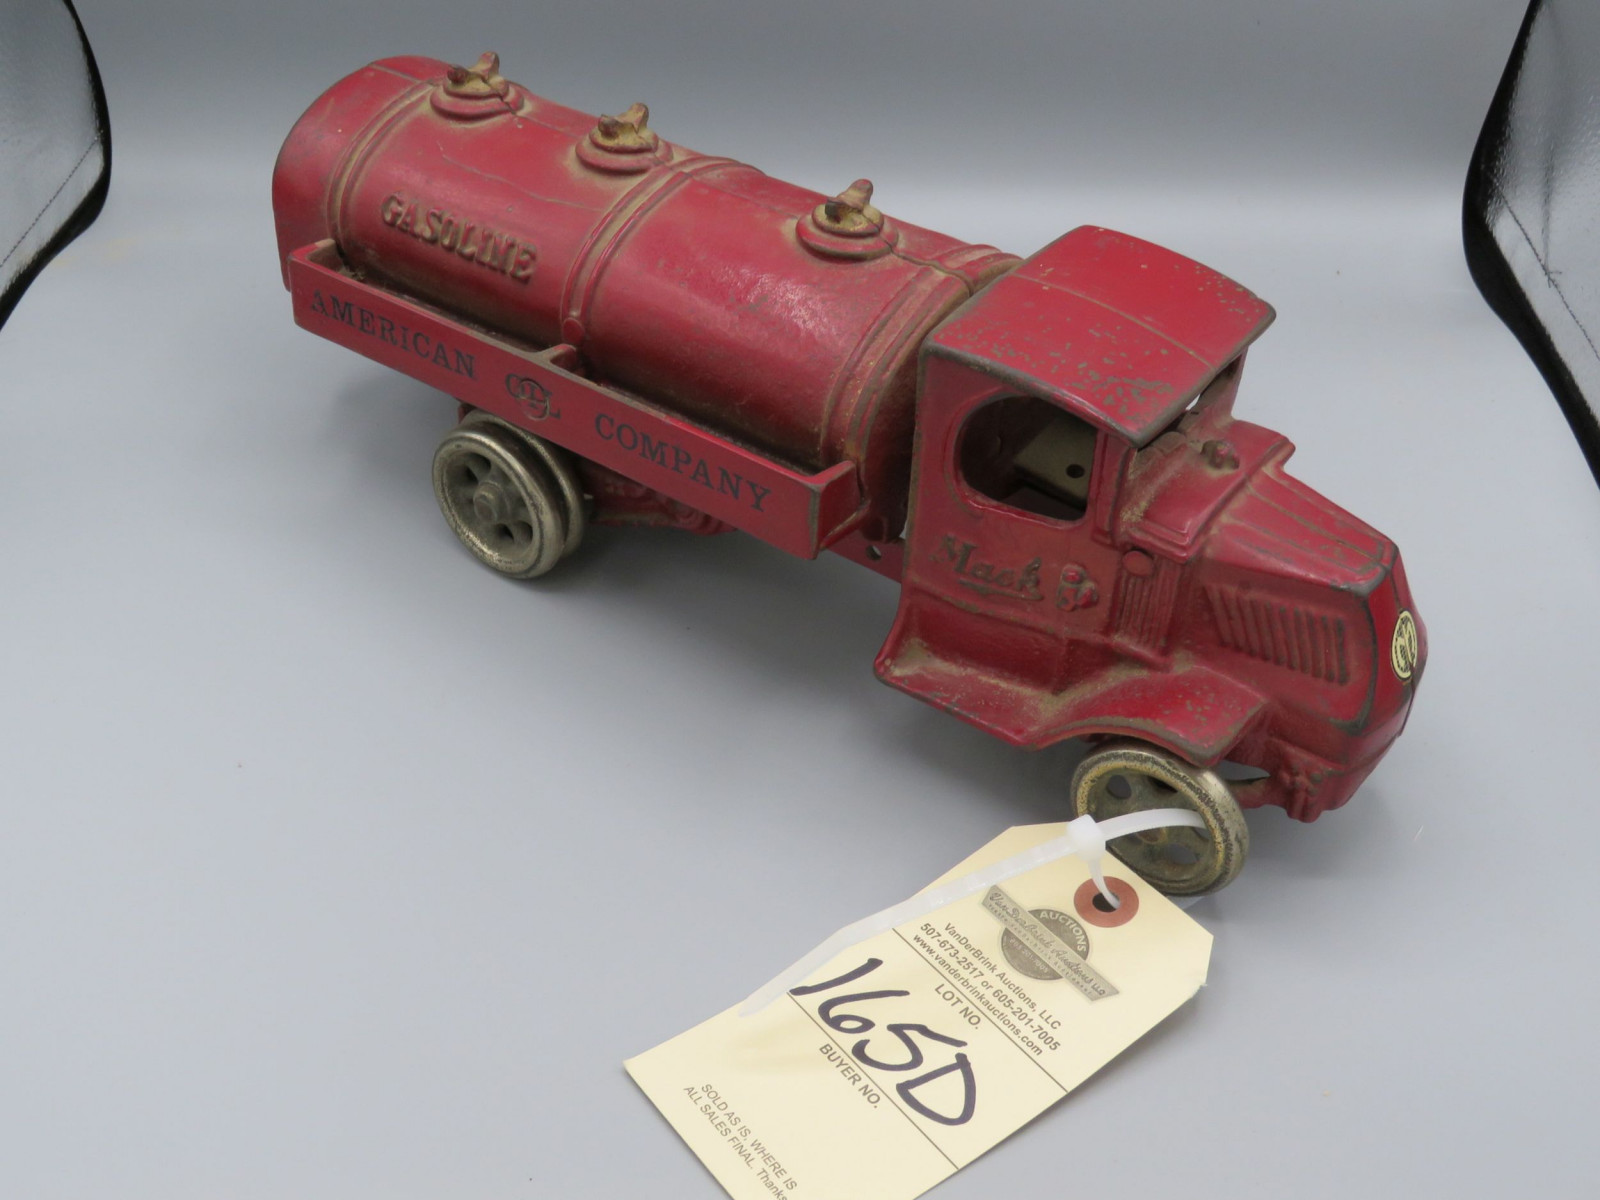 Cast Iron Mack Truck Tanker @1925 Approx. 13 1/4 inches poss. Arcade - Image 1